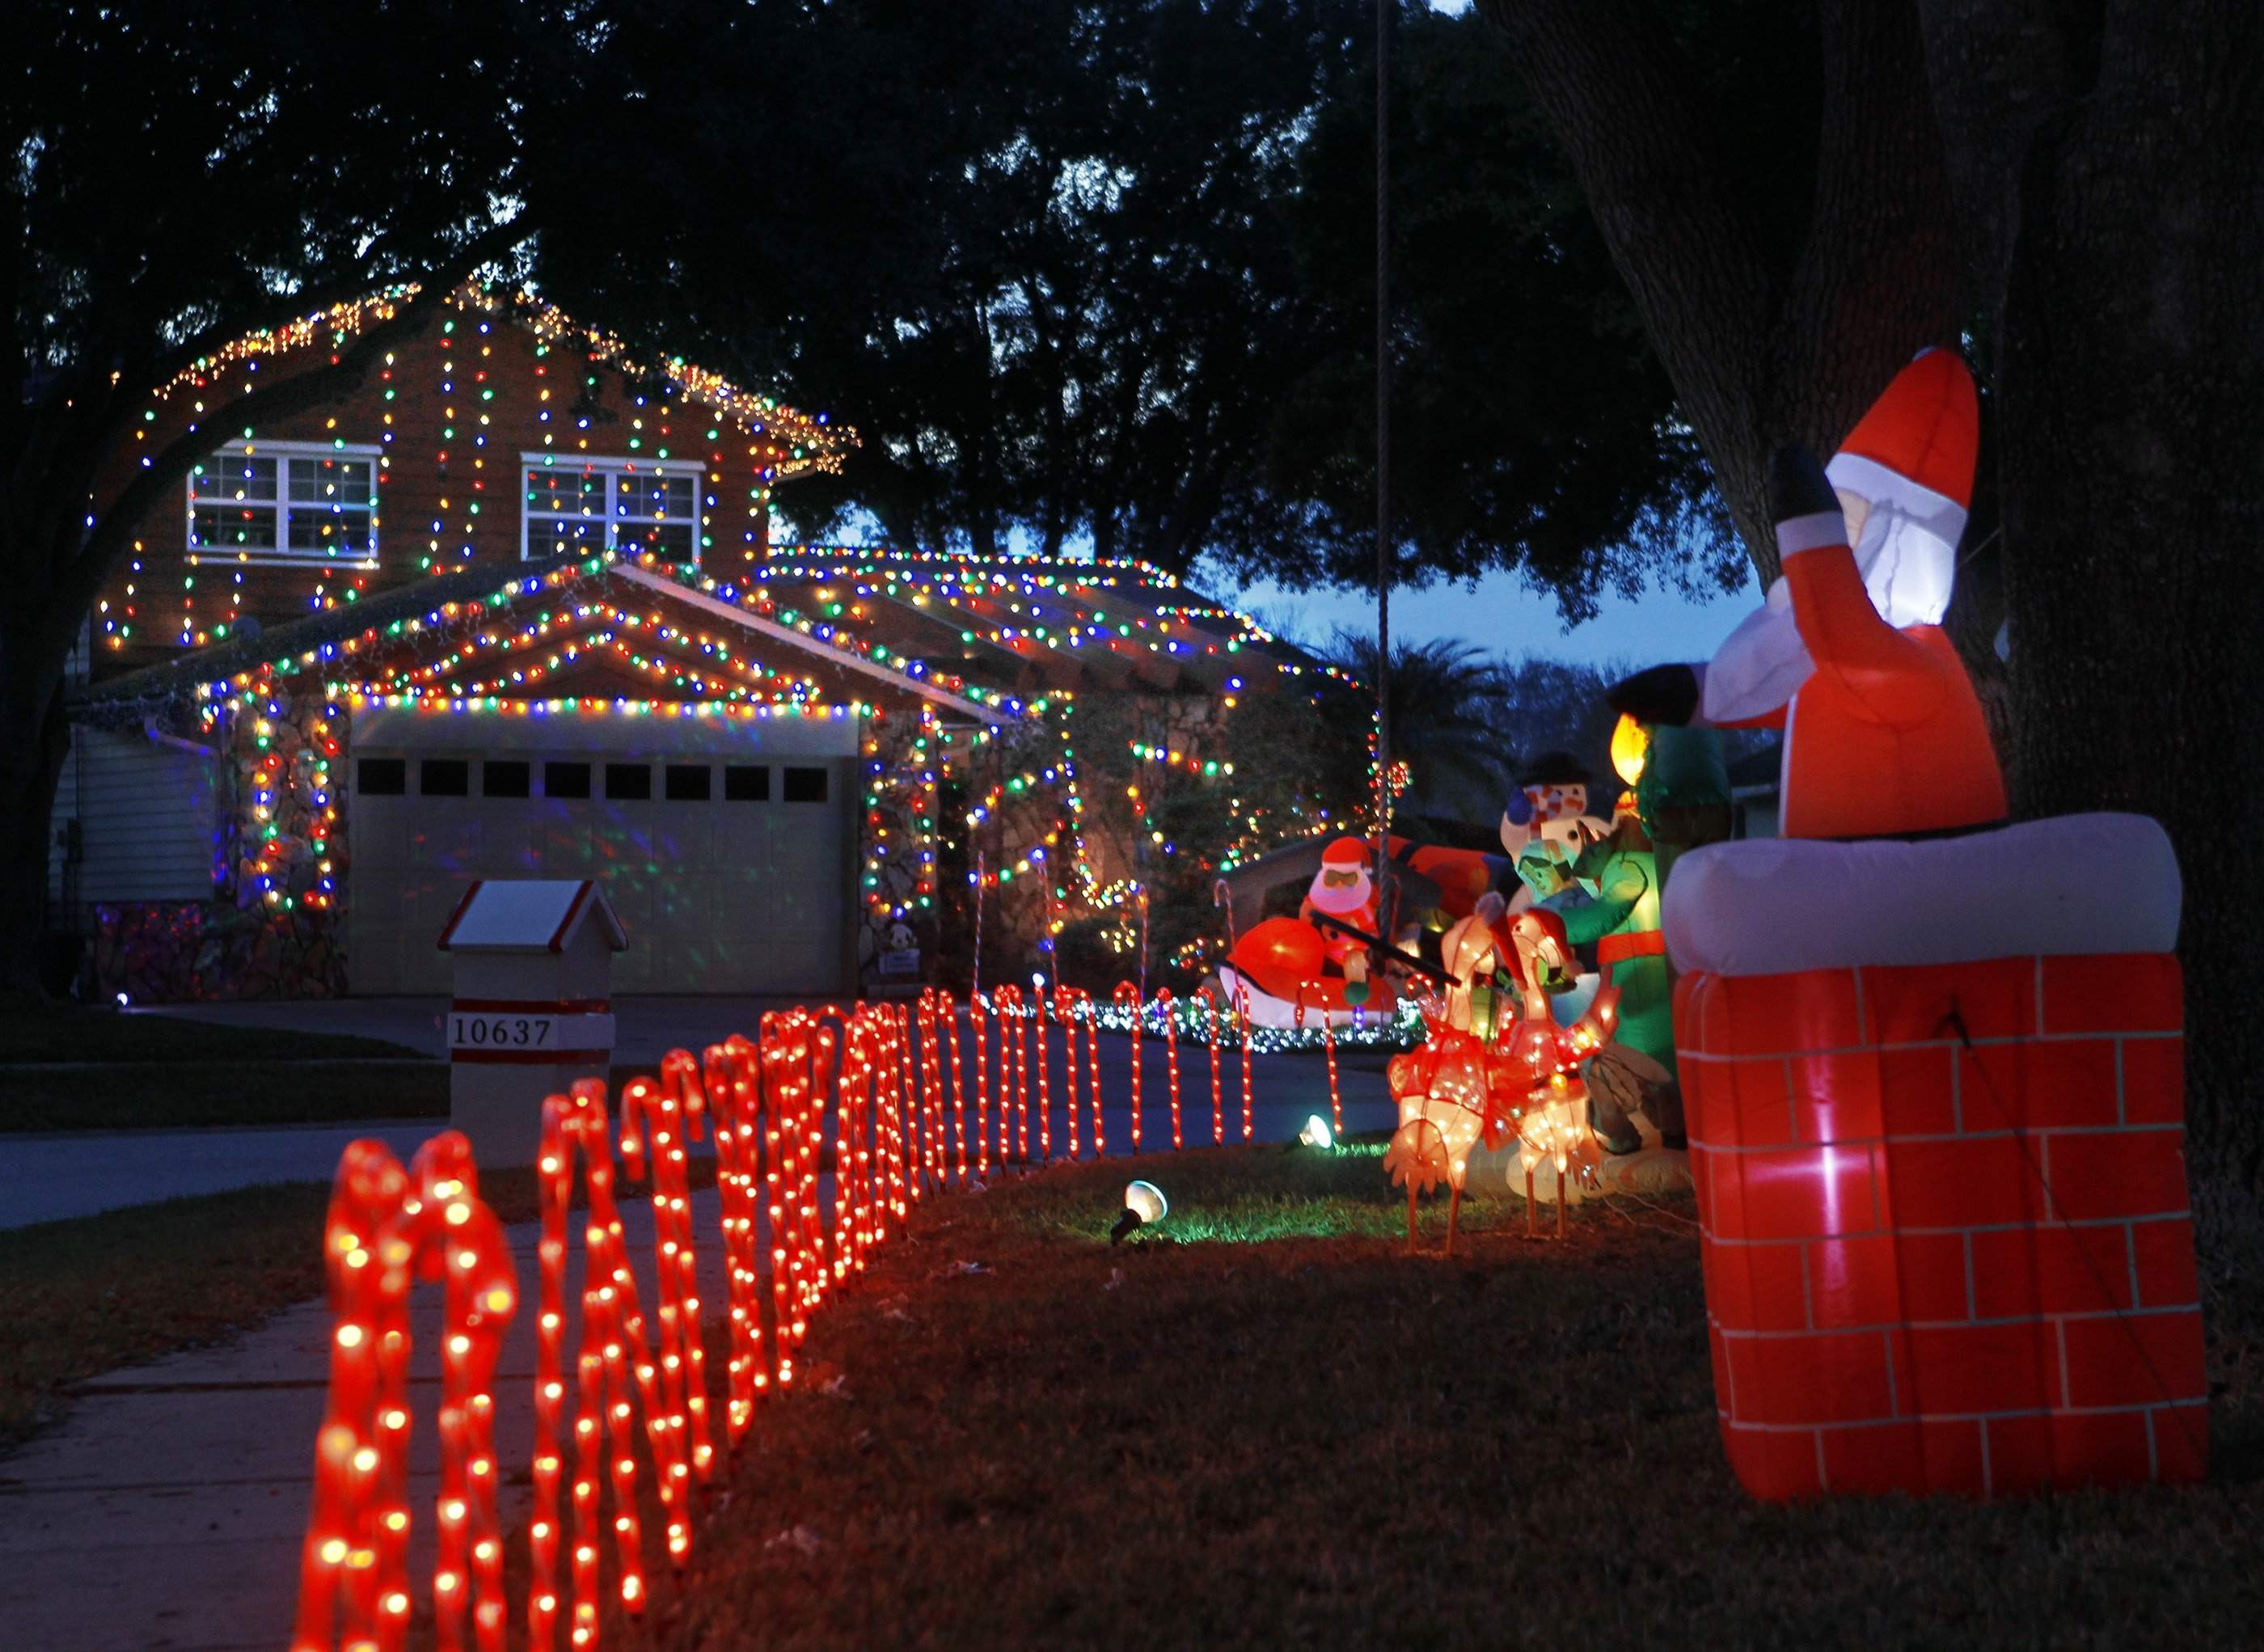 Christmas Things To Do Near Me.More Than 100 Things To Do For The Holidays In Tampa Bay